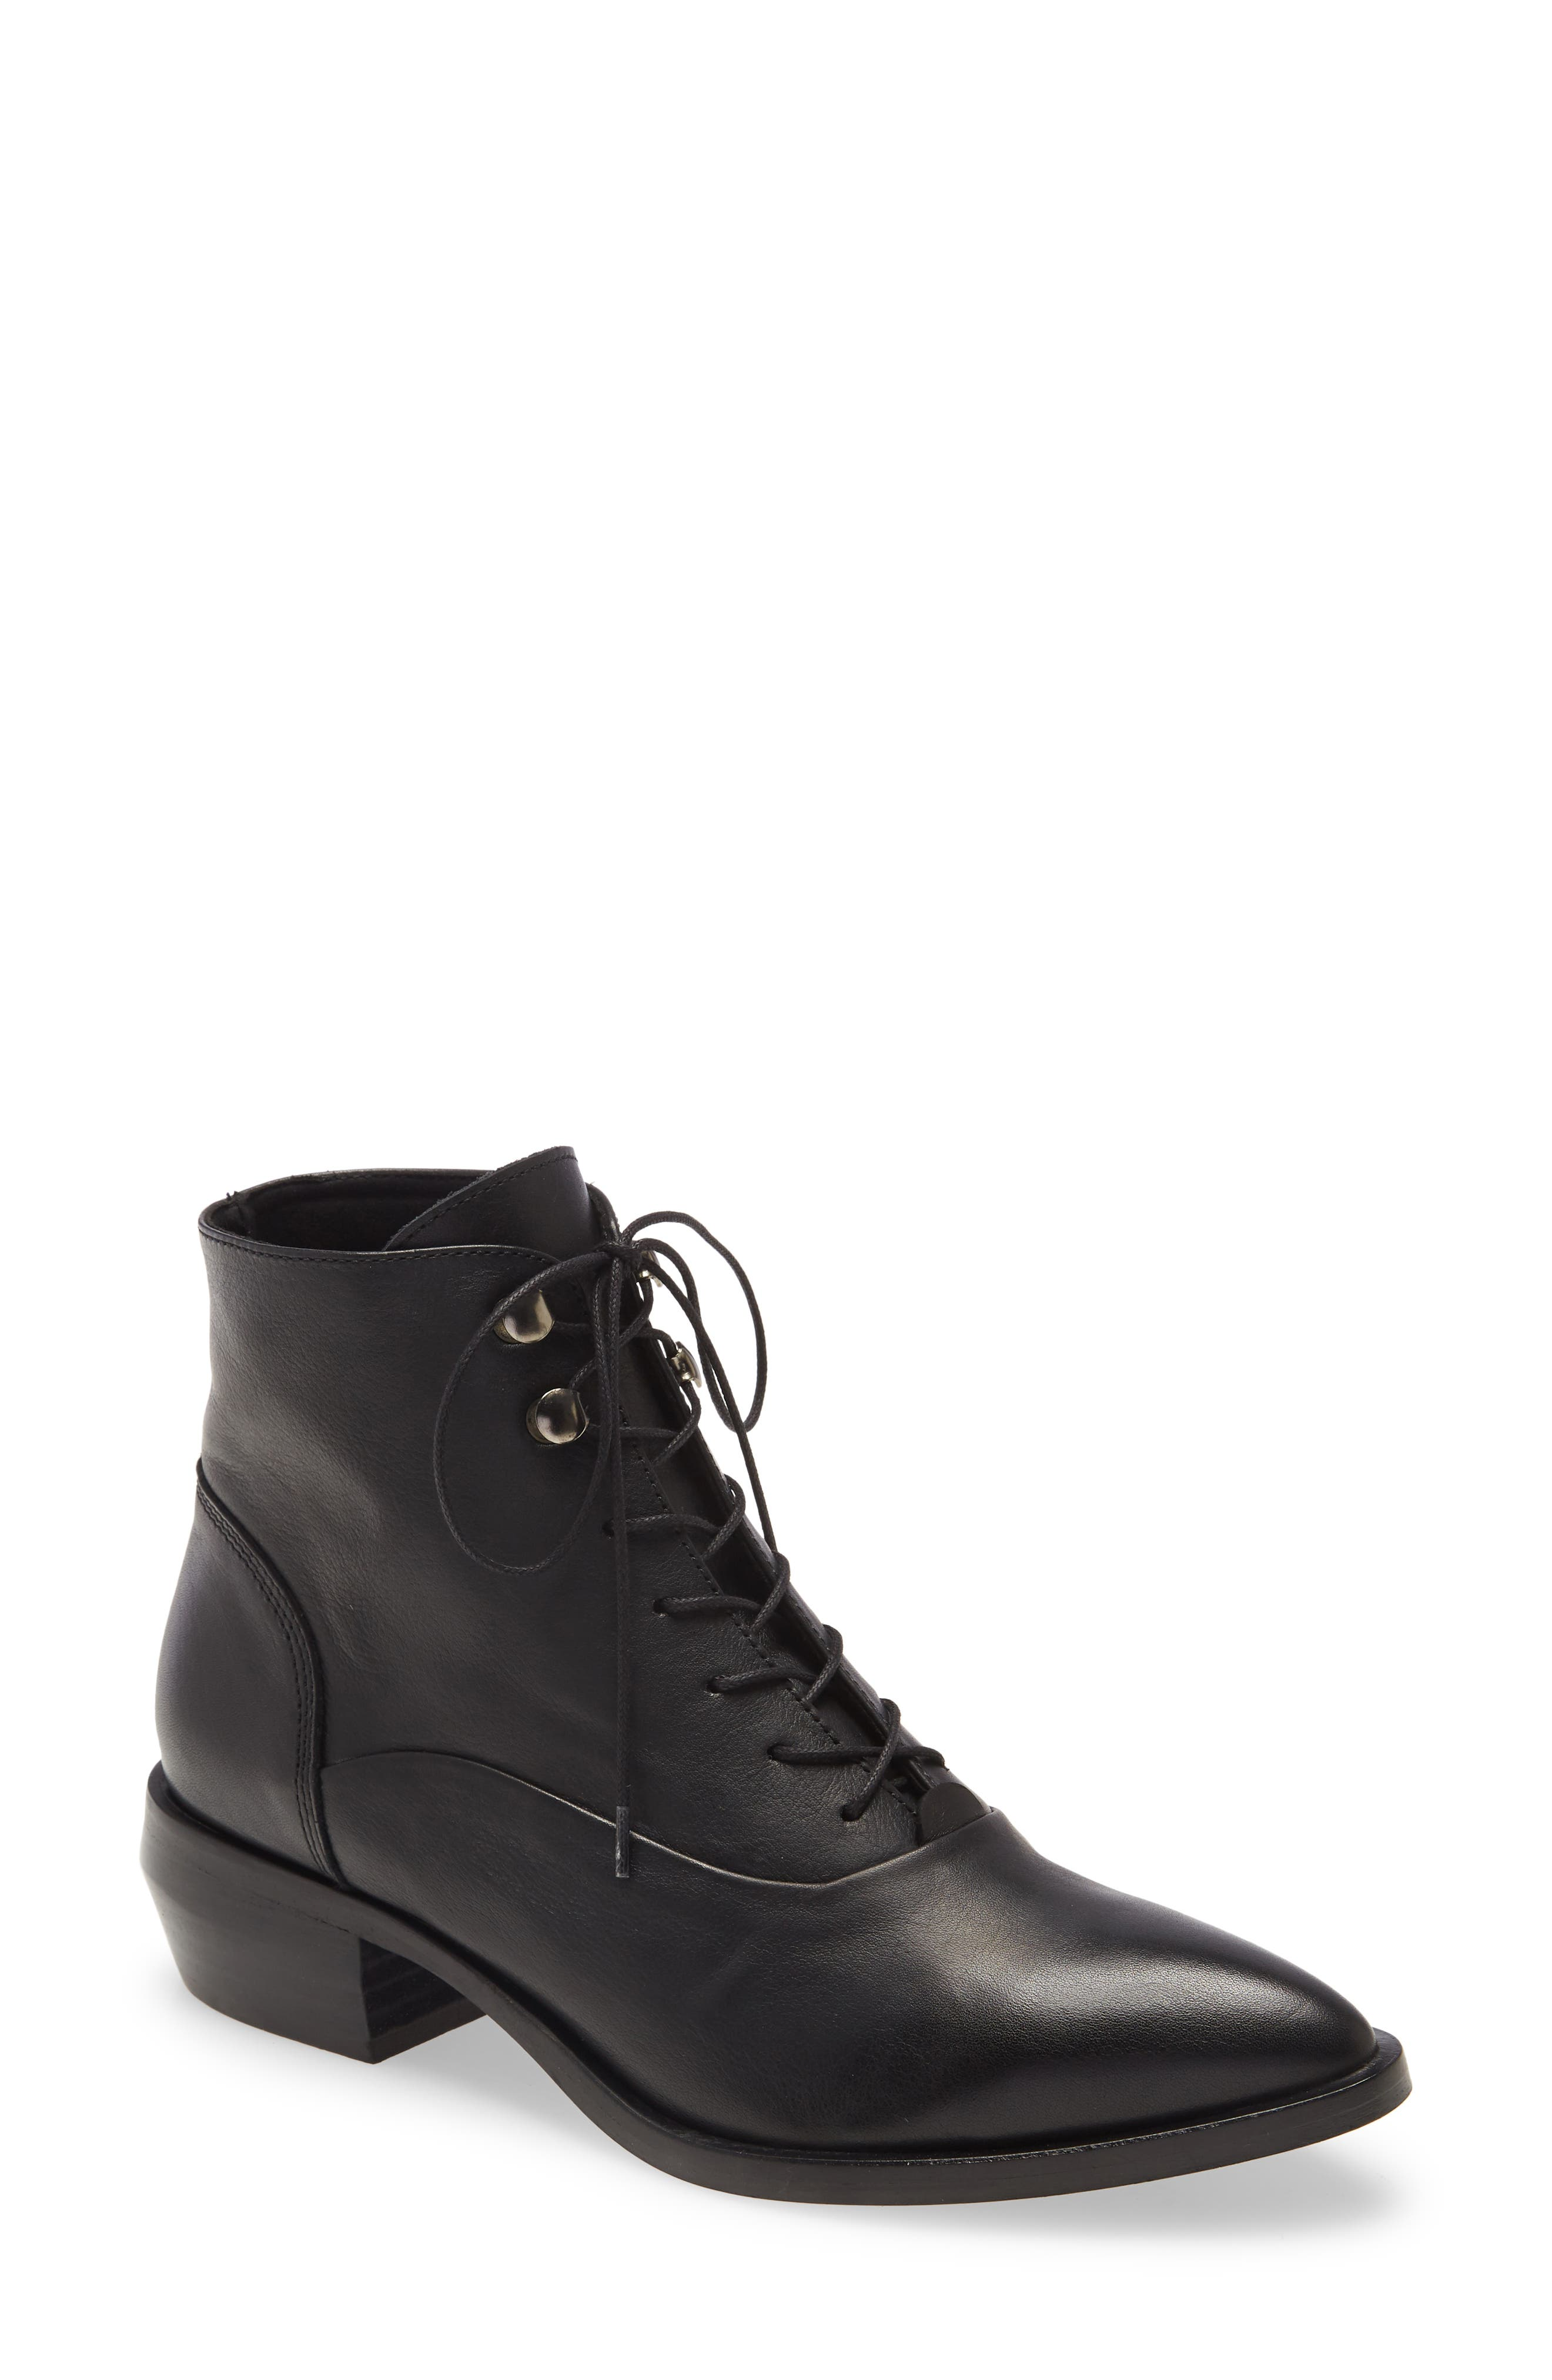 West Leather Bootie